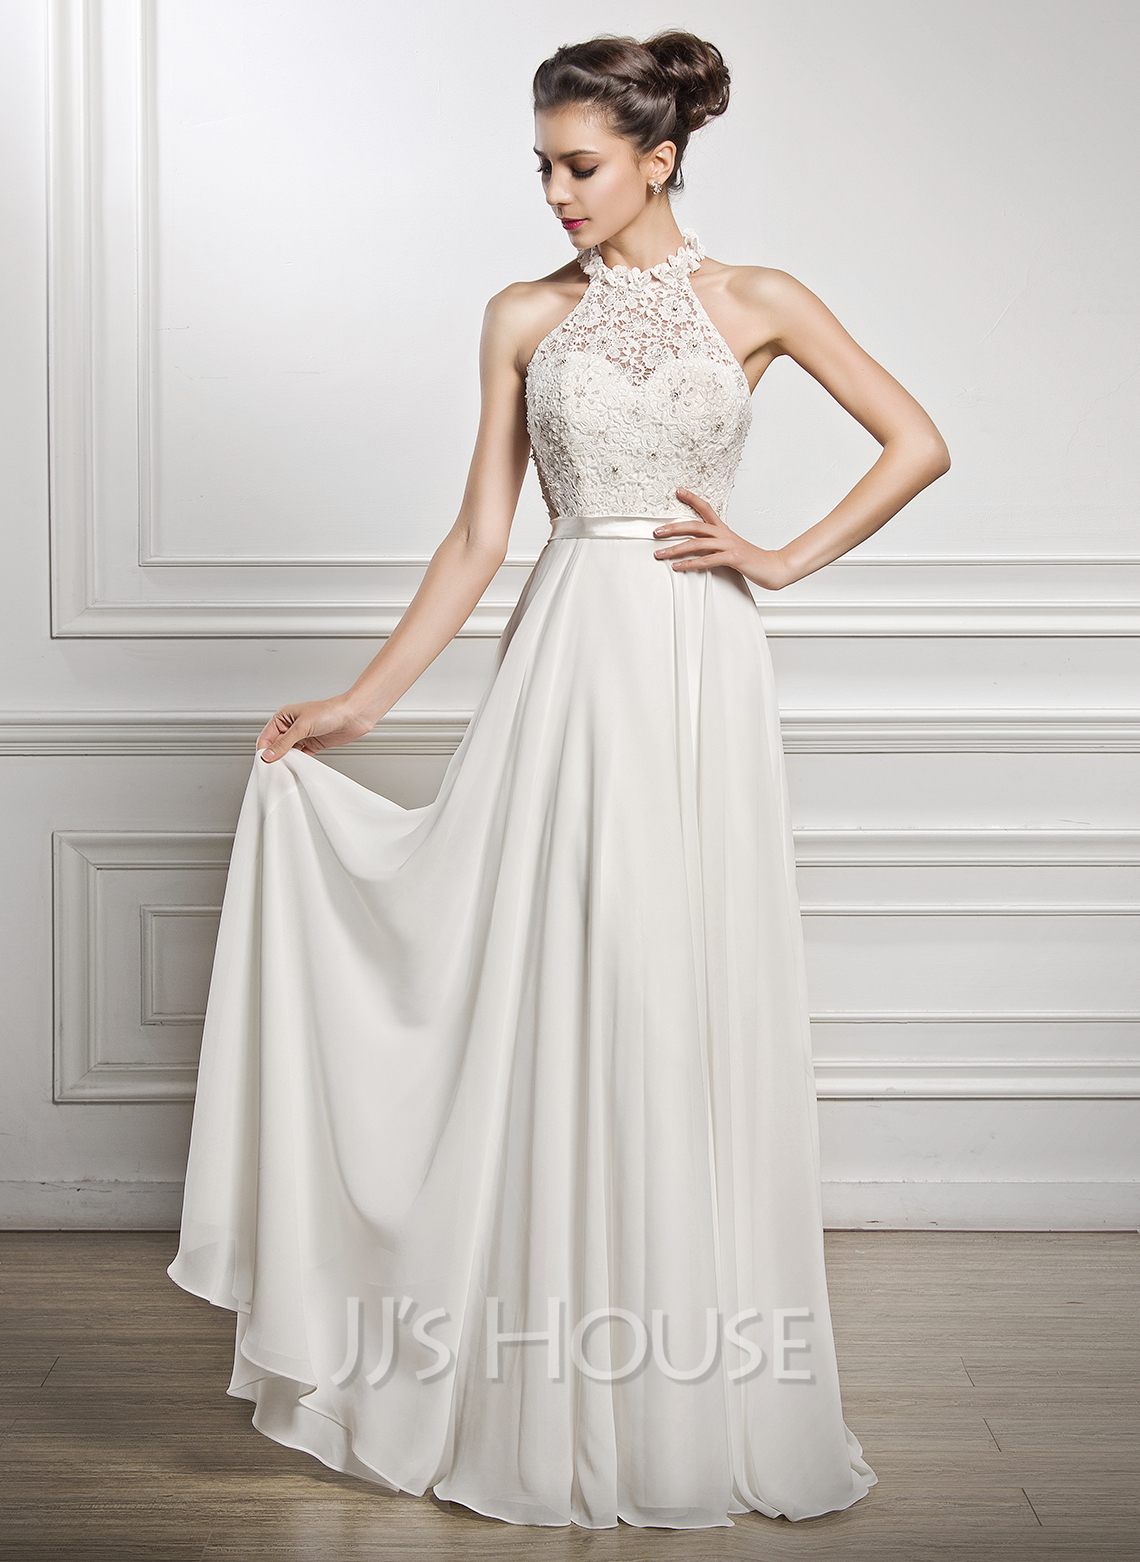 A Lineprincess Scoop Neck Floor Length Chiffon Wedding Dress With